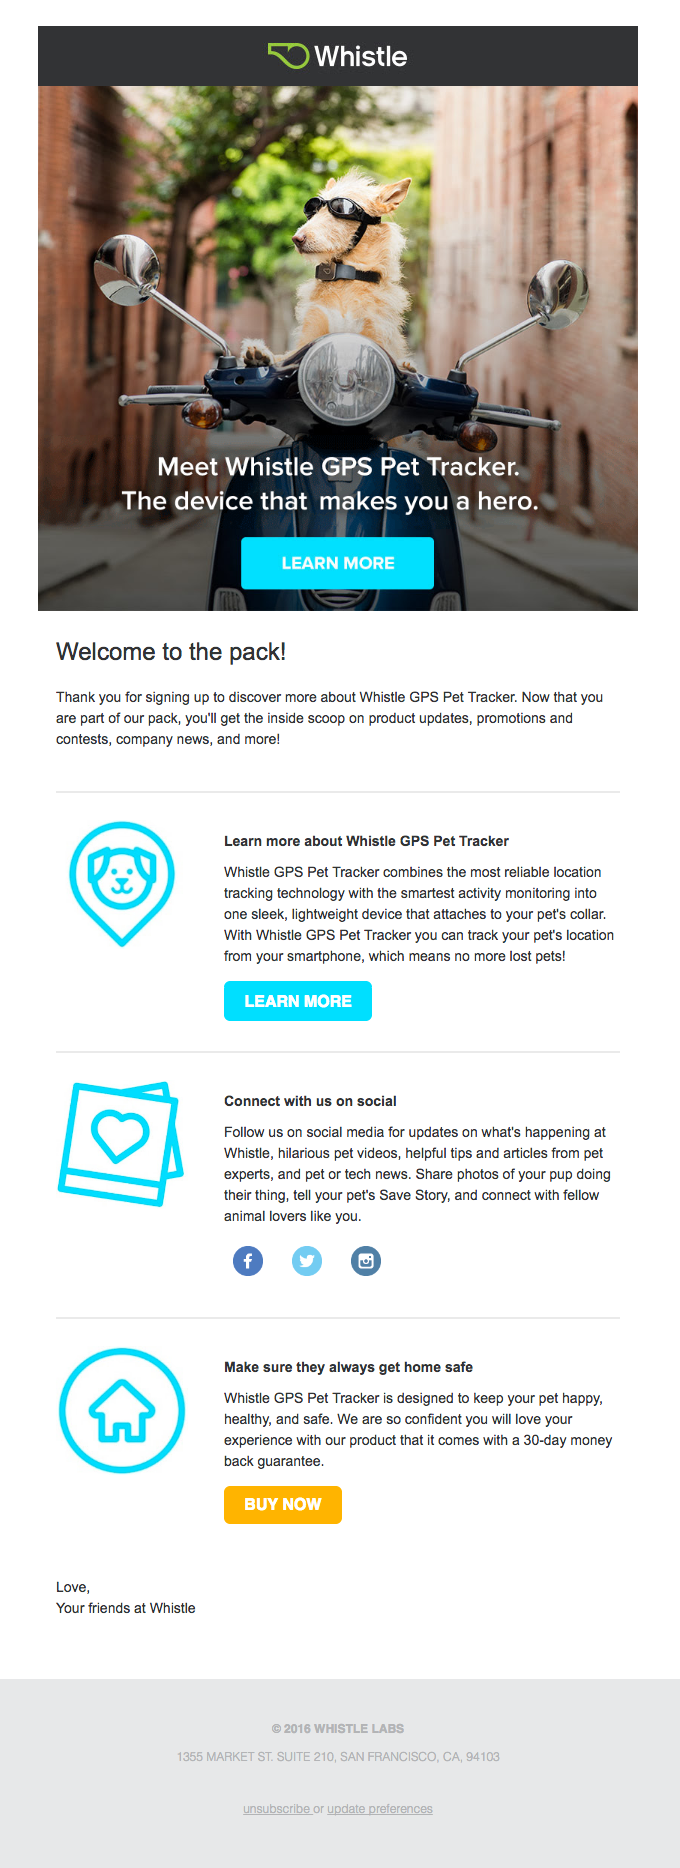 Welcome to the pack! Thanks for signing up to learn more.